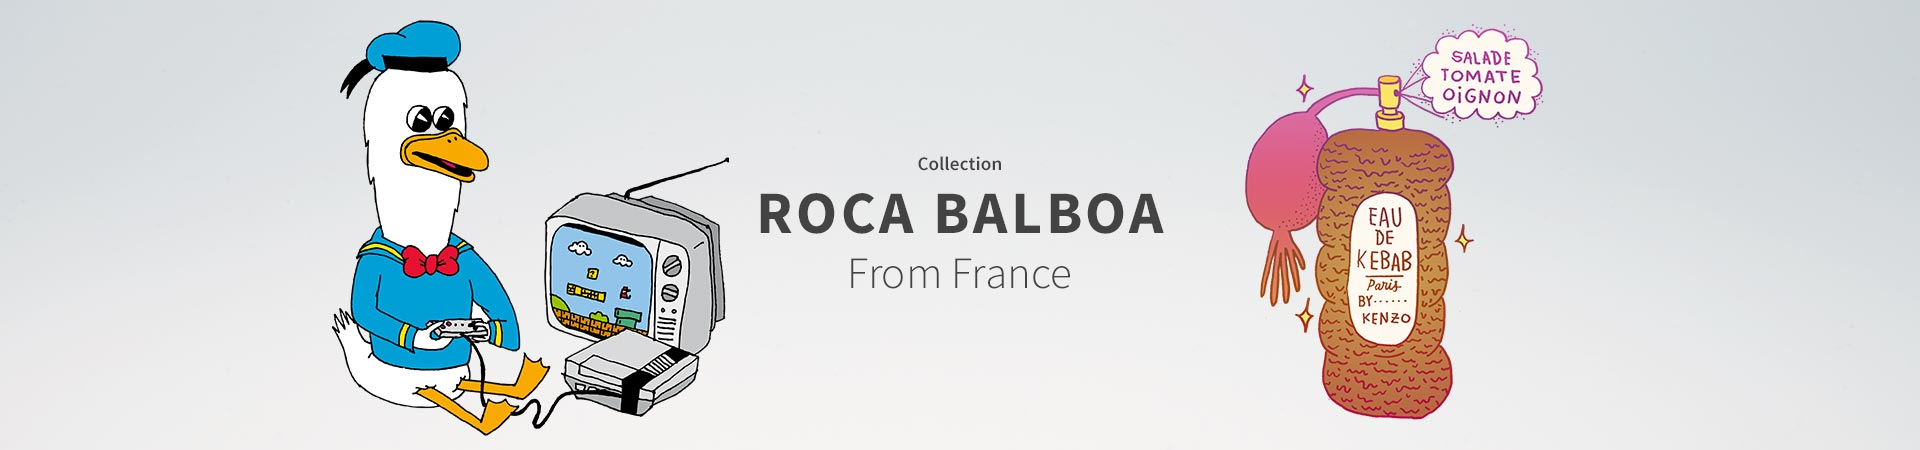 Collection Roca Balboa